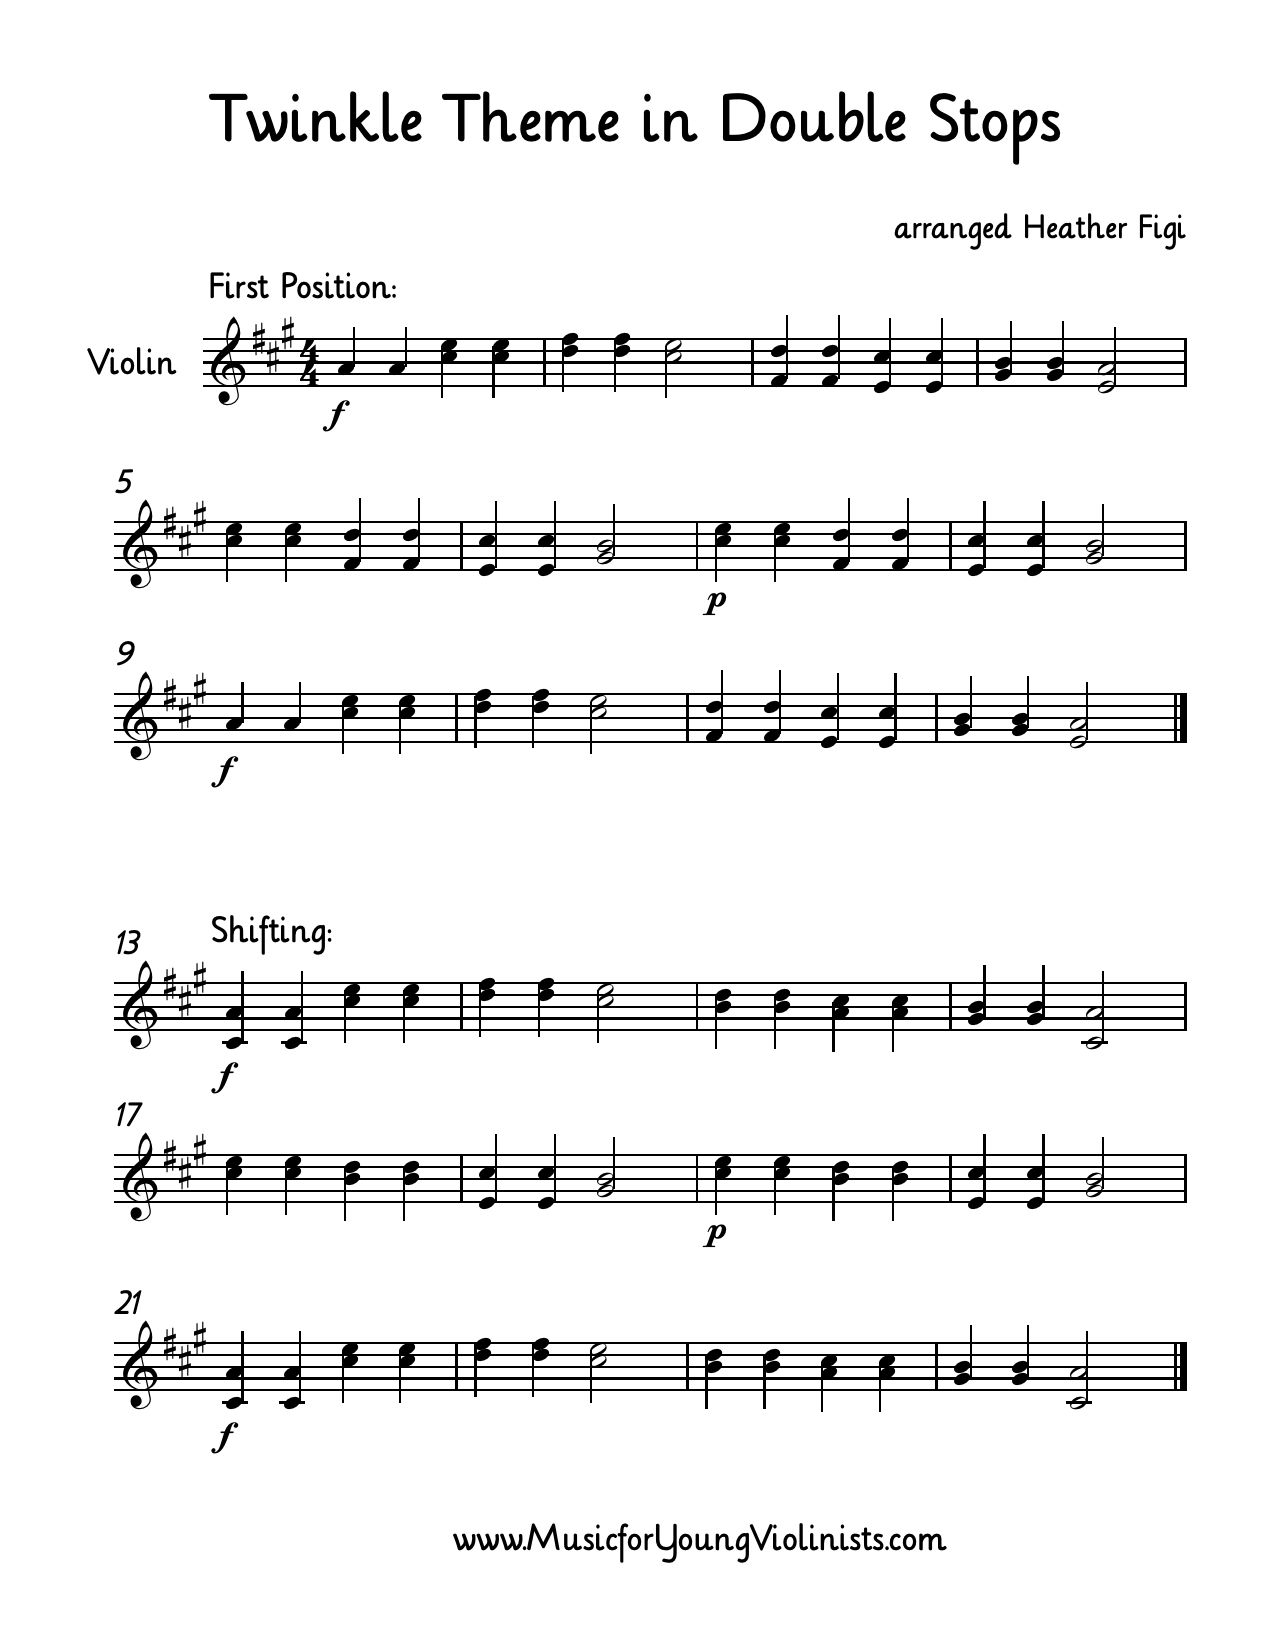 sheet music violin twinkle theme arranged double sheet music violin twinkle theme arranged double stops first position